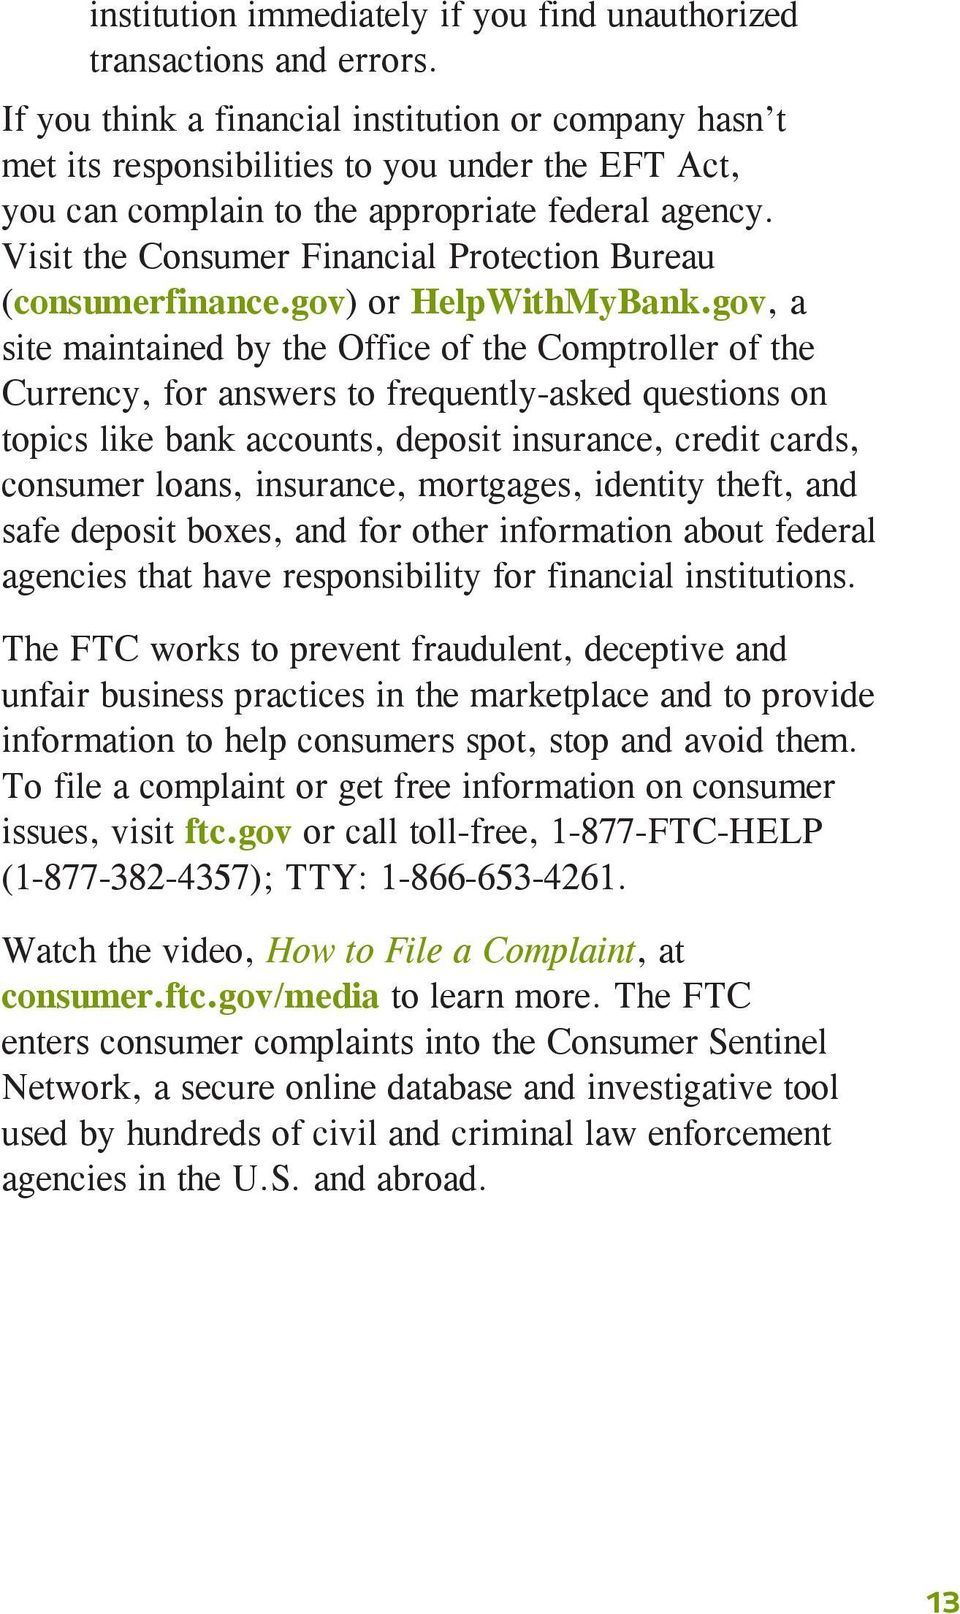 Visit the Consumer Financial Protection Bureau (consumerfinance.gov) or HelpWithMyBank.